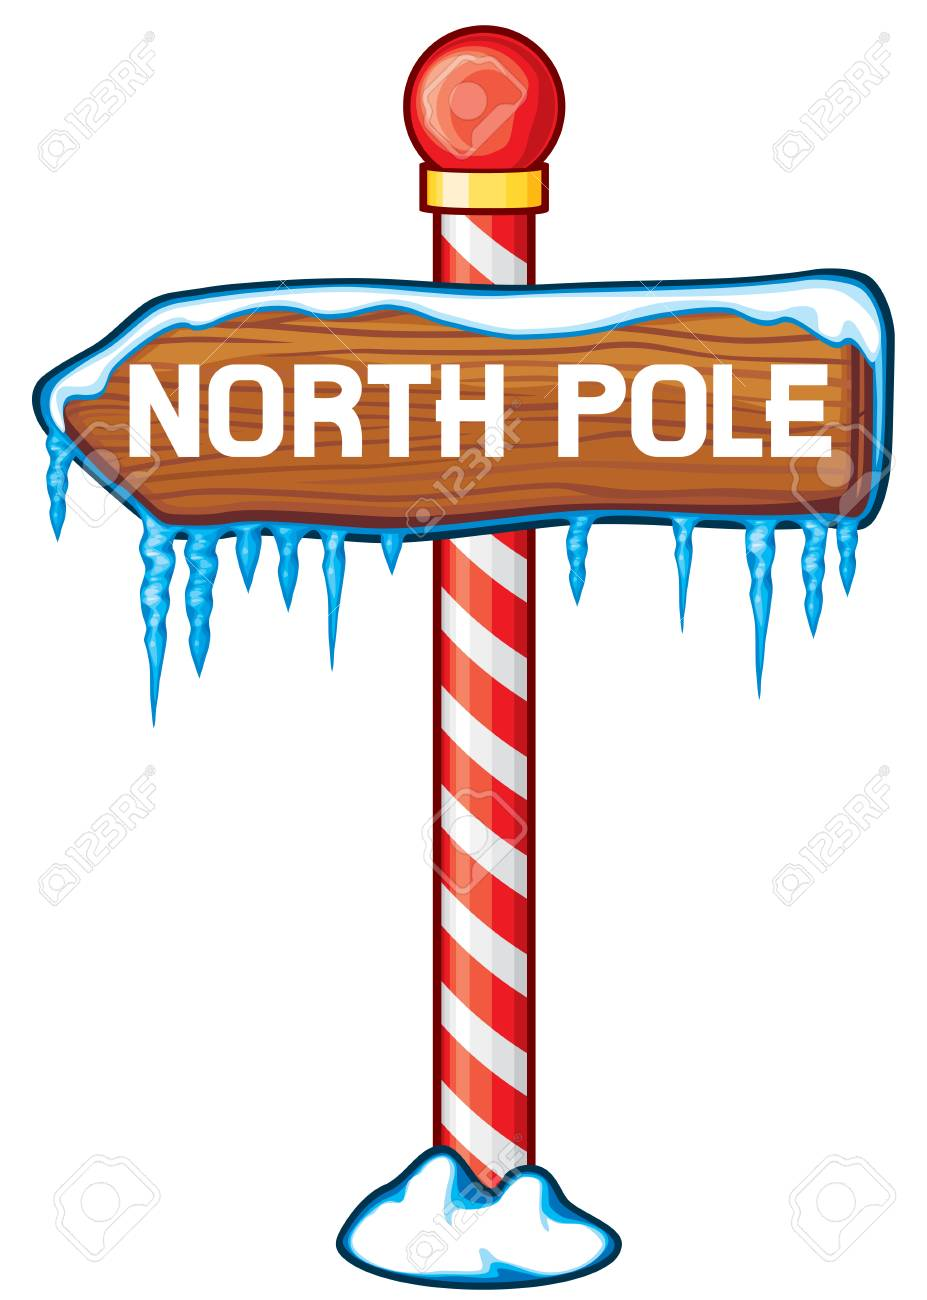 north pole wooden sign vector illustration royalty free cliparts rh 123rf com north pole clip art free north pole clip art stamp